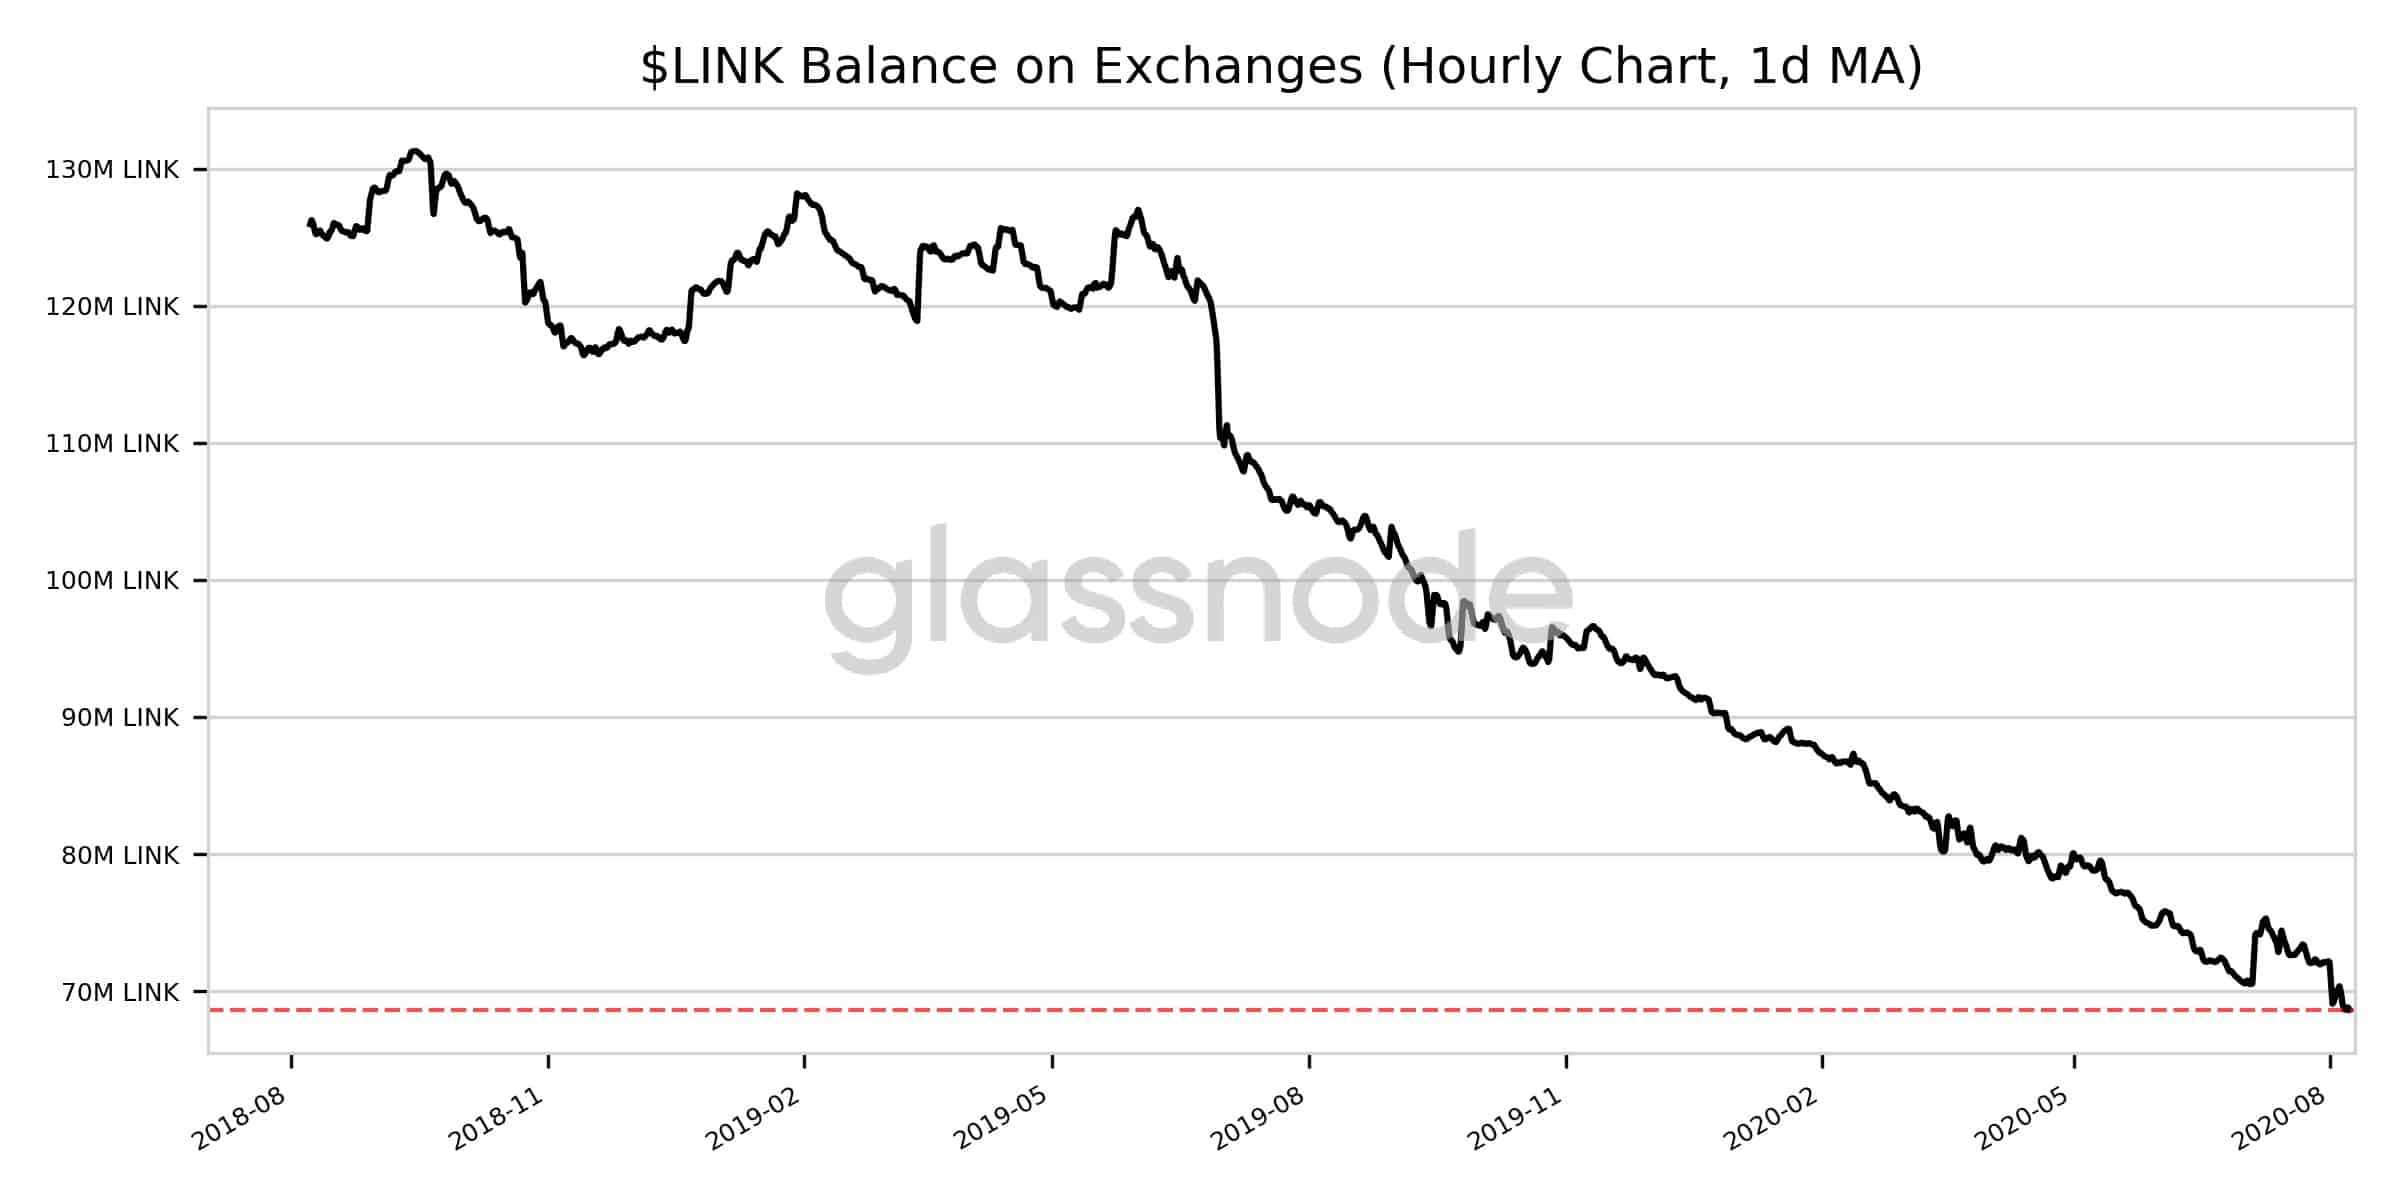 Chainlink [LINK] Records New High As Other Prominent Coins Record Slump